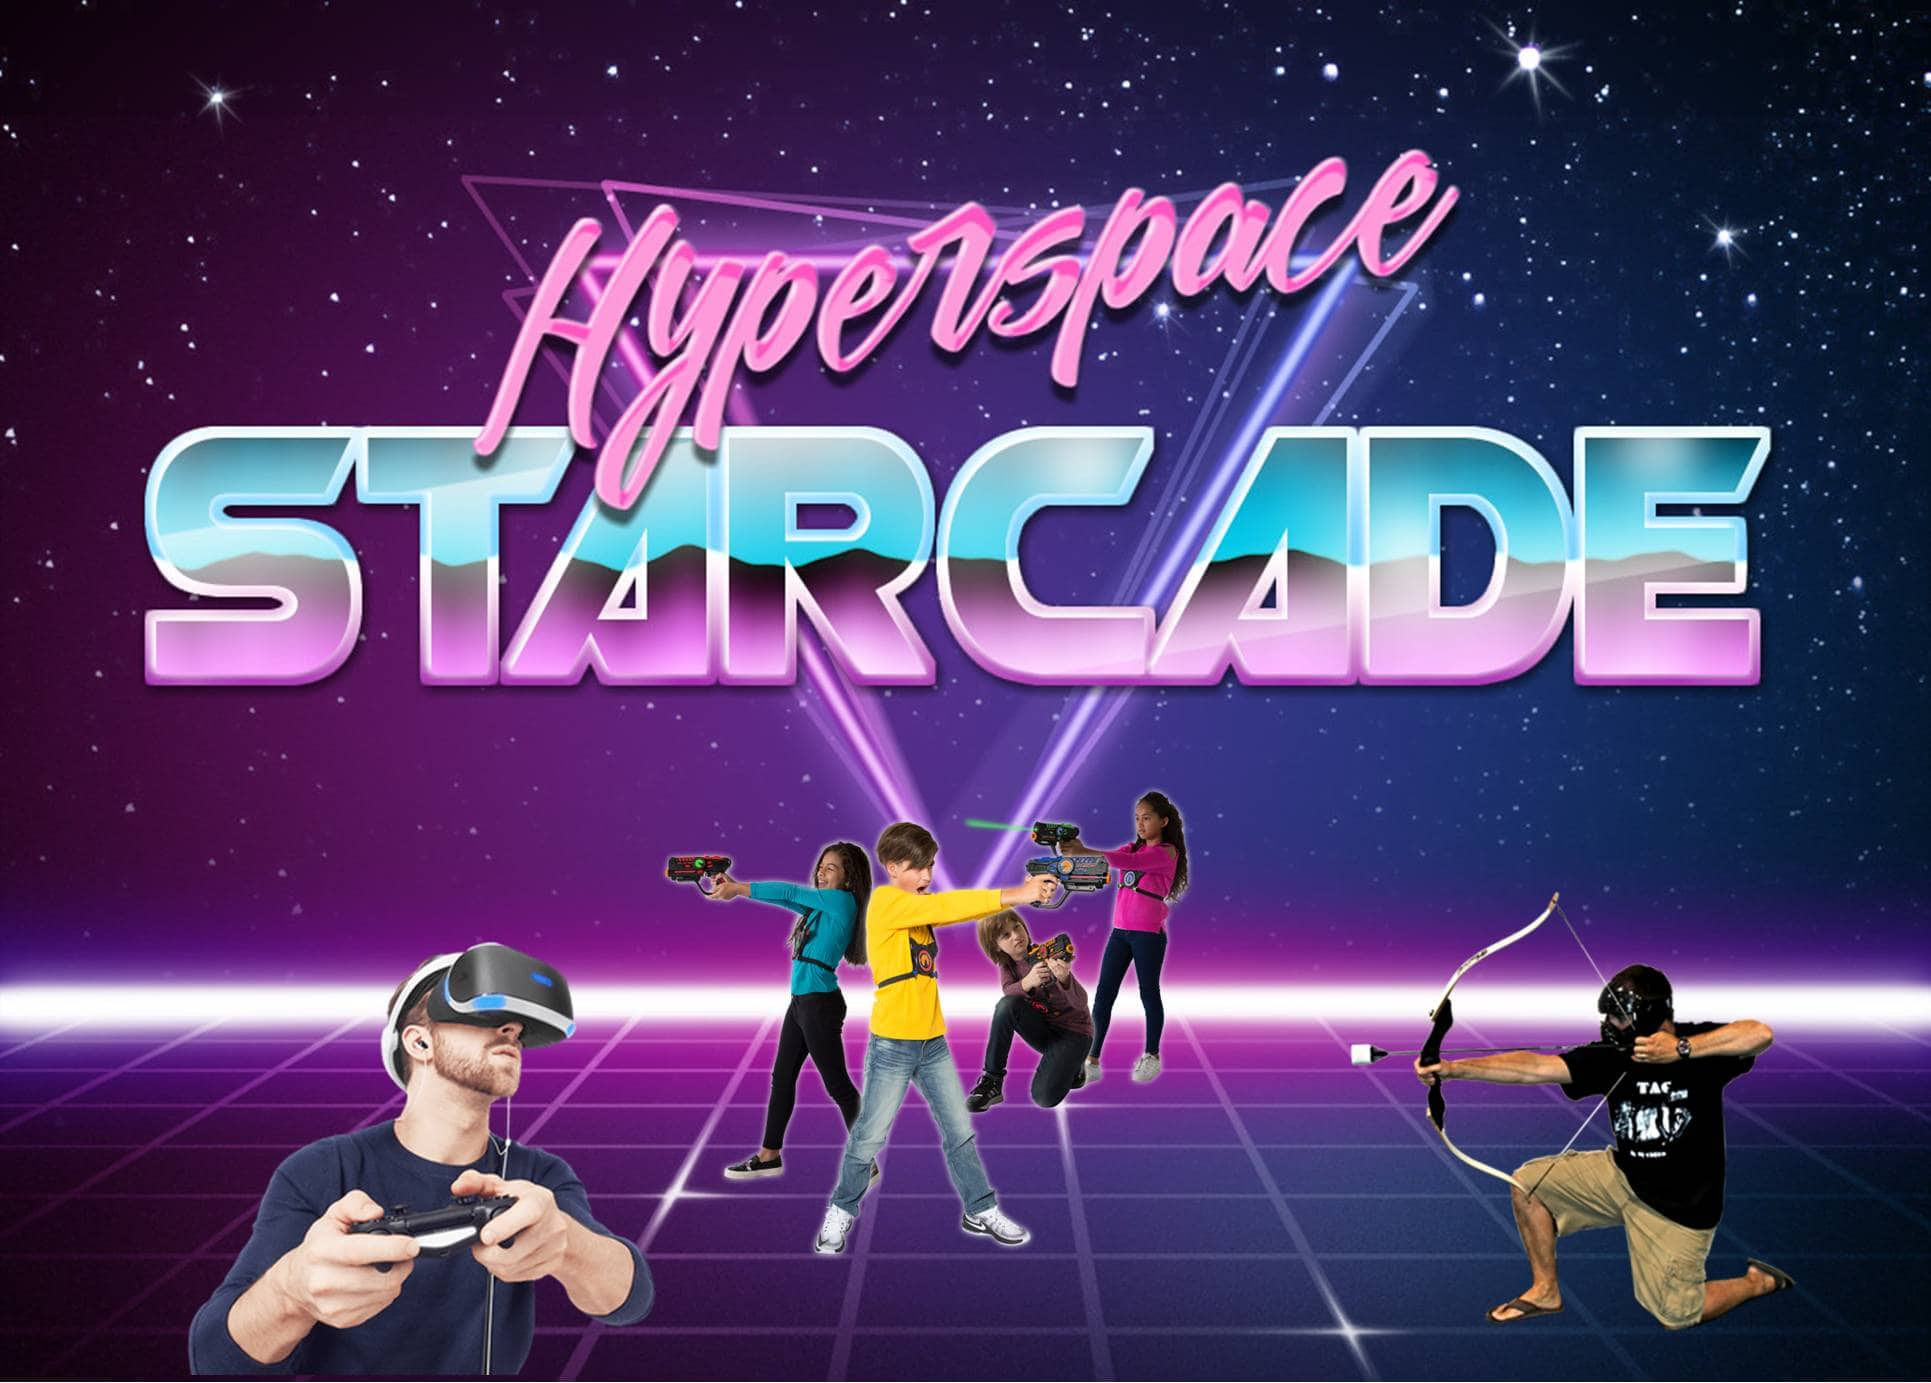 Hyperspace Starcade Rochester Minnesota Birthday Party Idea